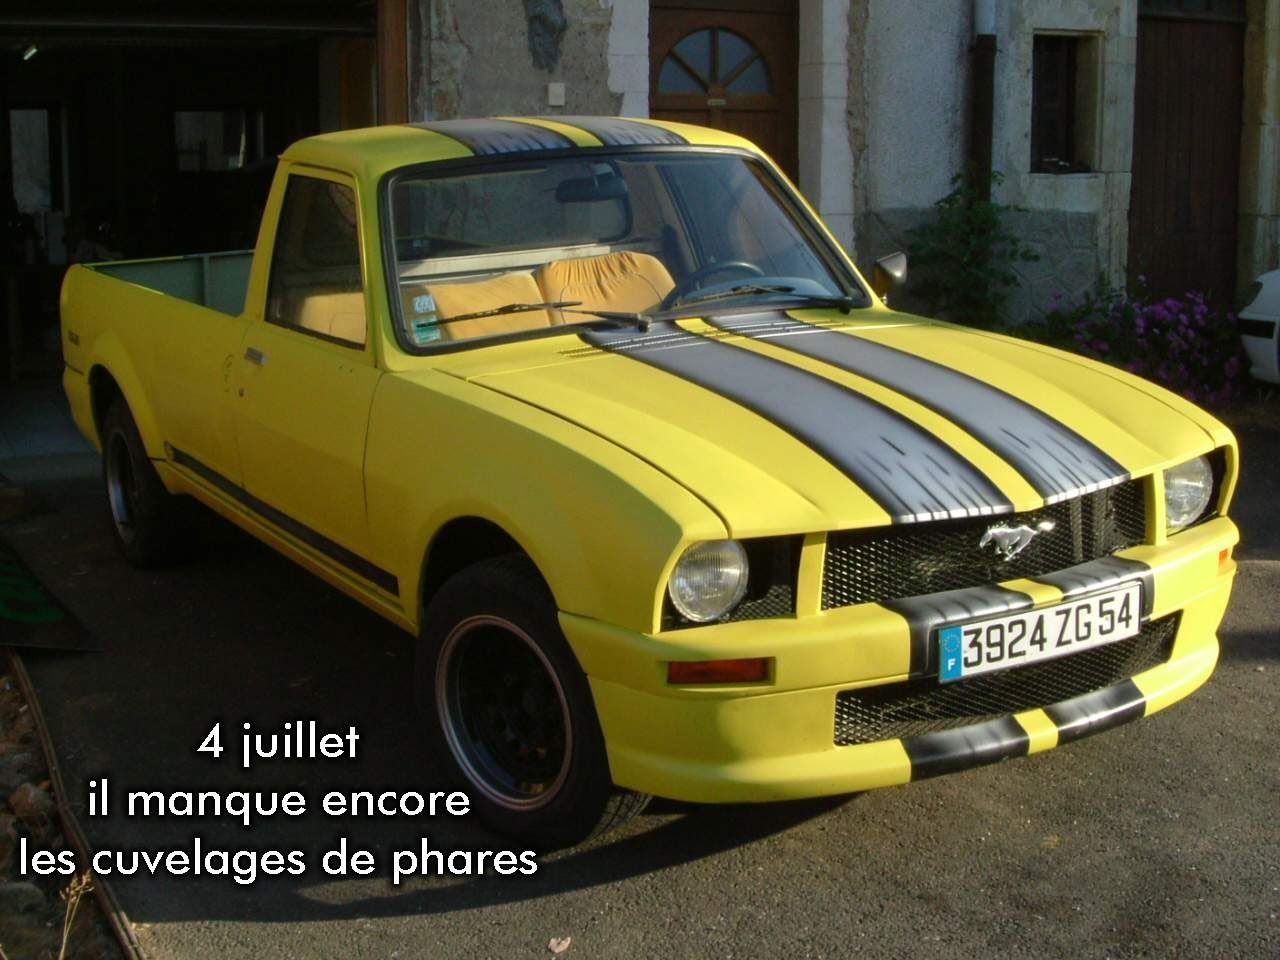 peugeot 504 pickup tuning cool pinterest classic cars peugeot and cars. Black Bedroom Furniture Sets. Home Design Ideas